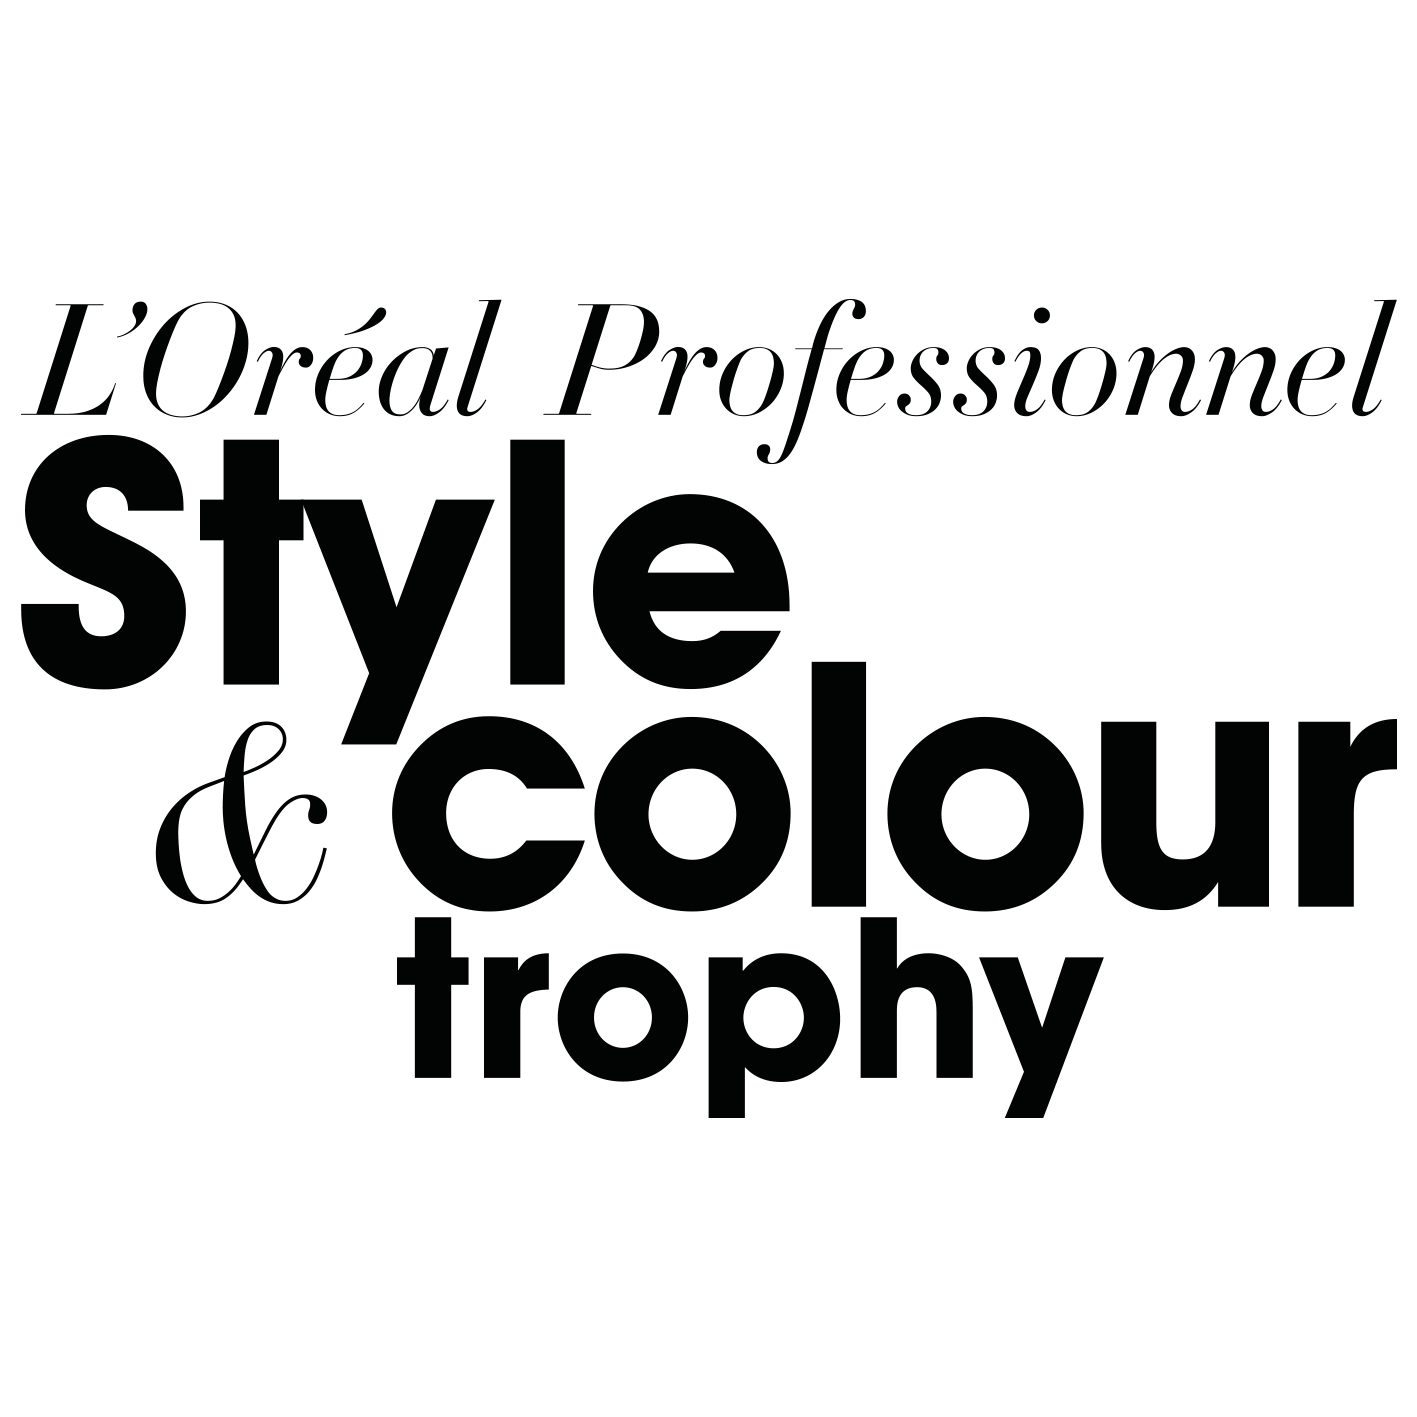 loreal professionnel style and colour trophy logo